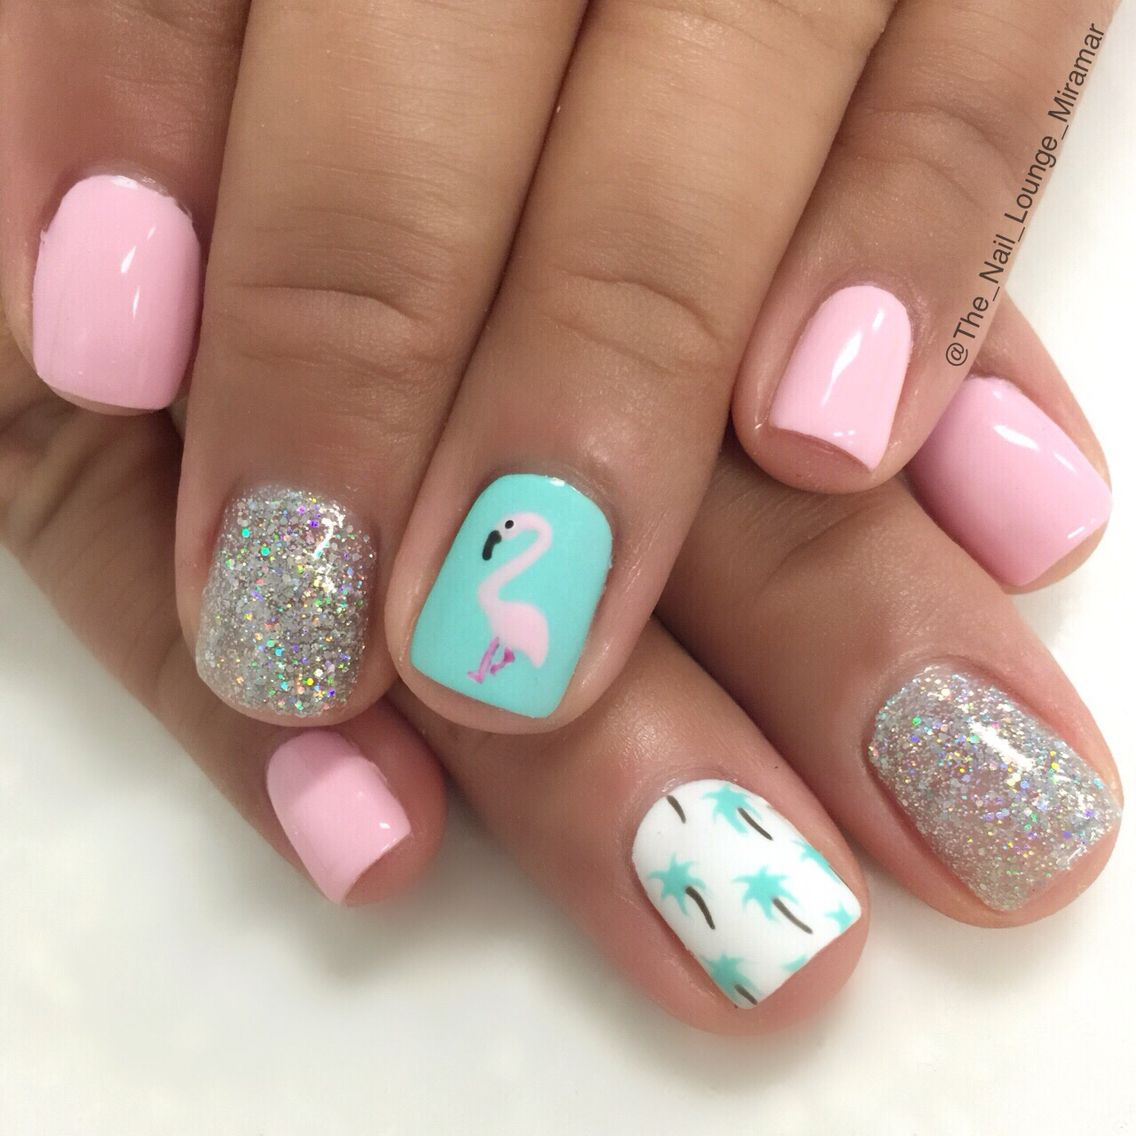 Flamingo palmtrees summer vacation nails inspired by ...